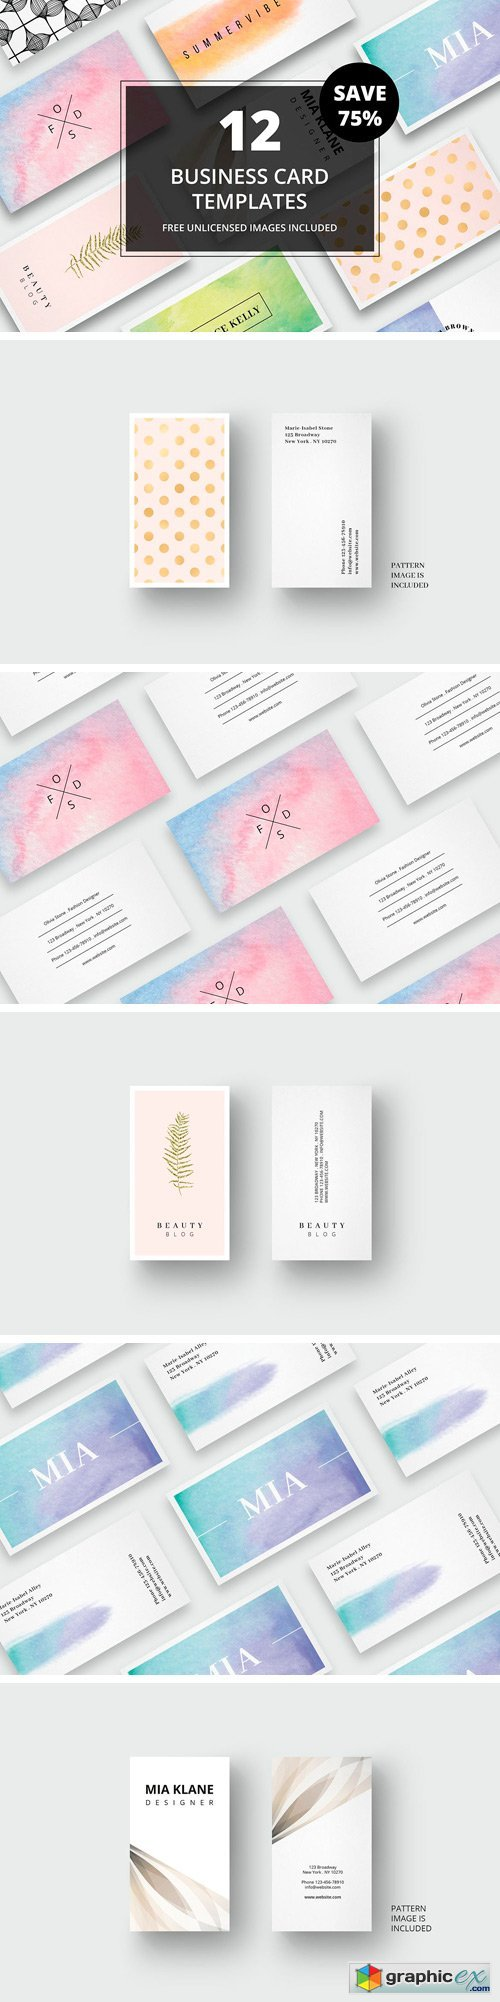 Business Card Bundle + Images No. 2